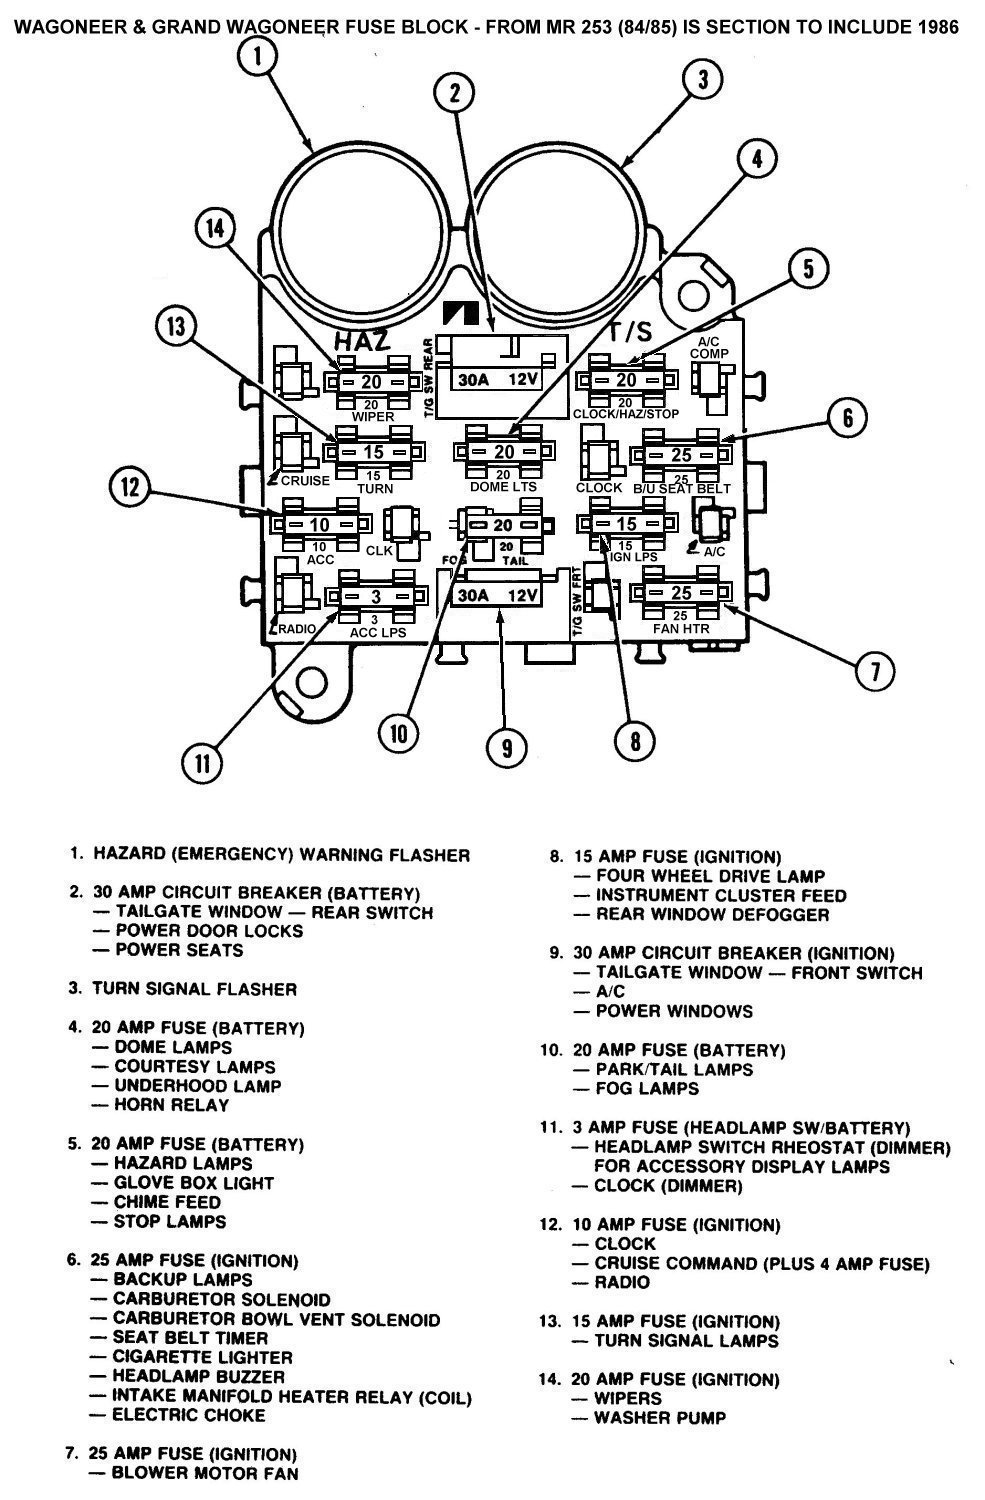 1978 Cj5 Fuse Panel Diagram Online Manuual Of Wiring 86 Toyota Box Jeep Todays Rh 13 8 4 1813weddingbarn Com Ford E 250